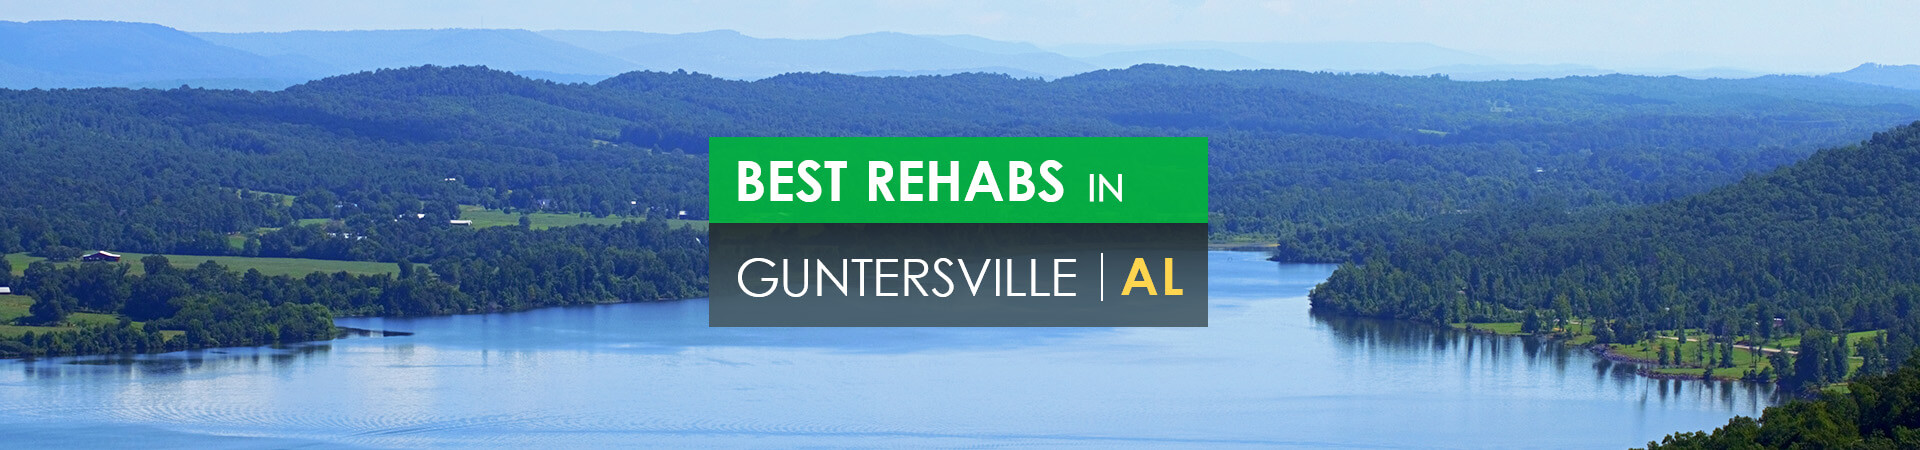 Best rehabs in Guntersville, AL